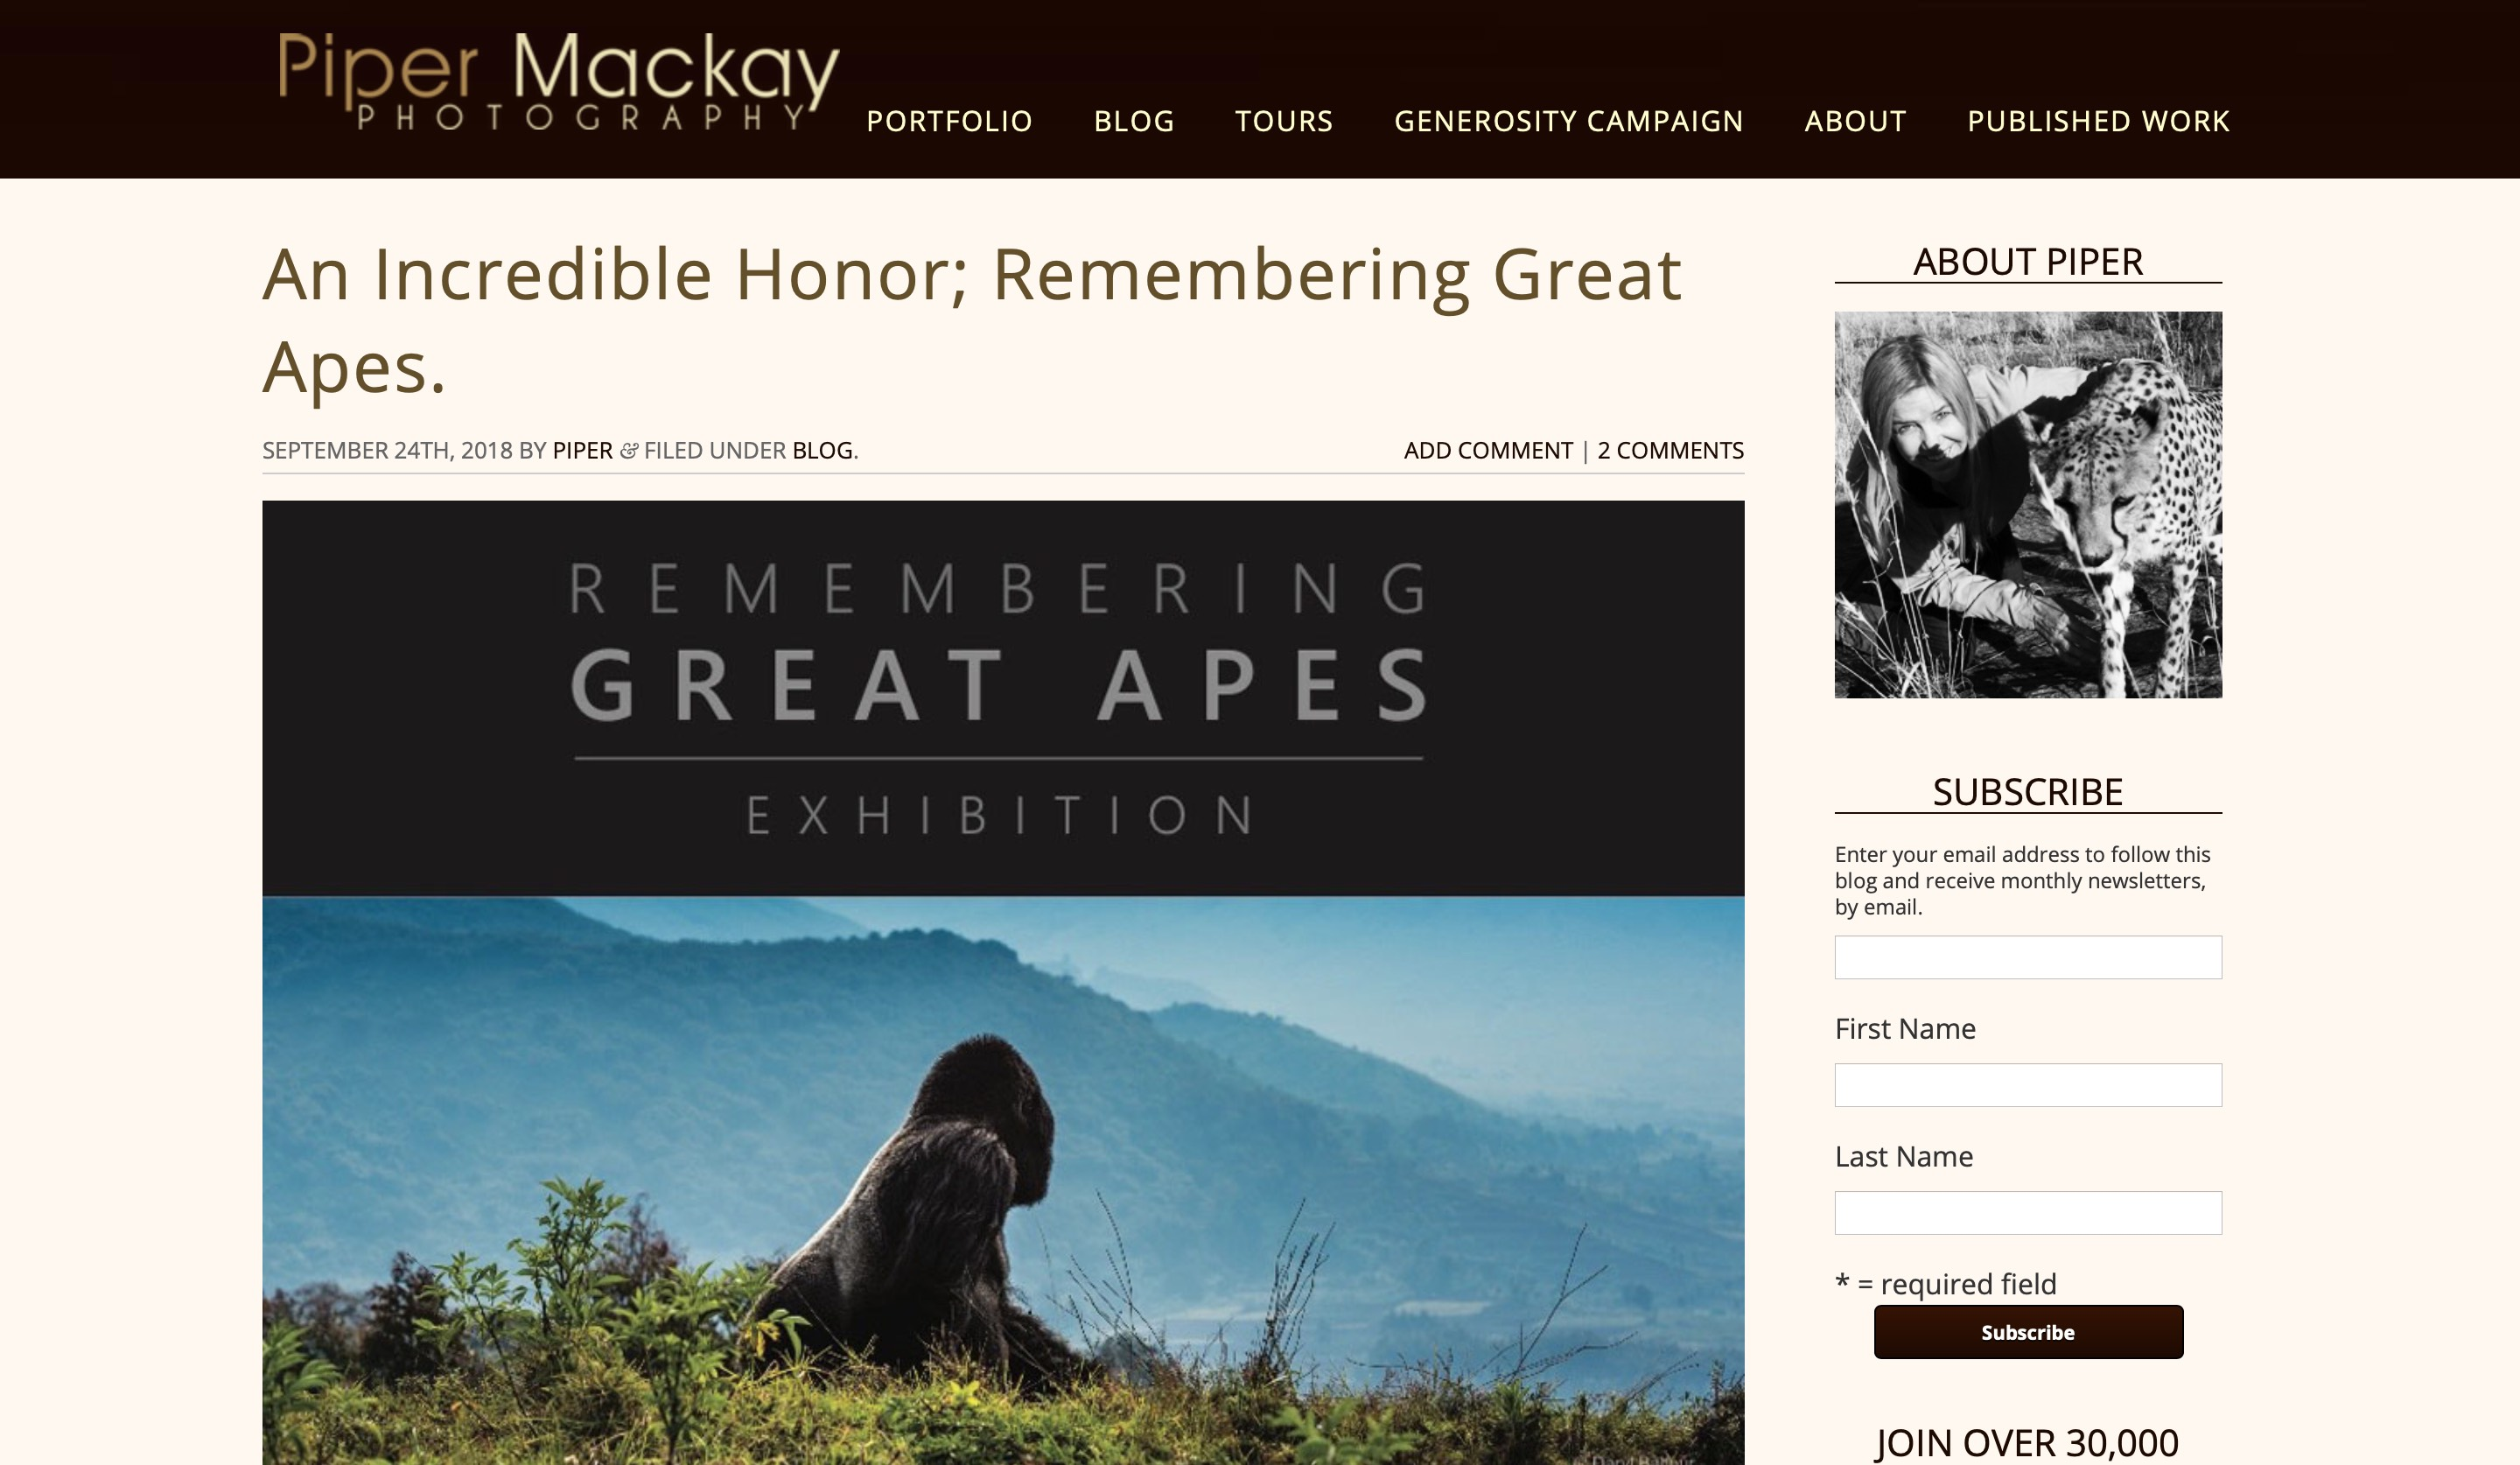 Piper Mackay website blog page screenshot